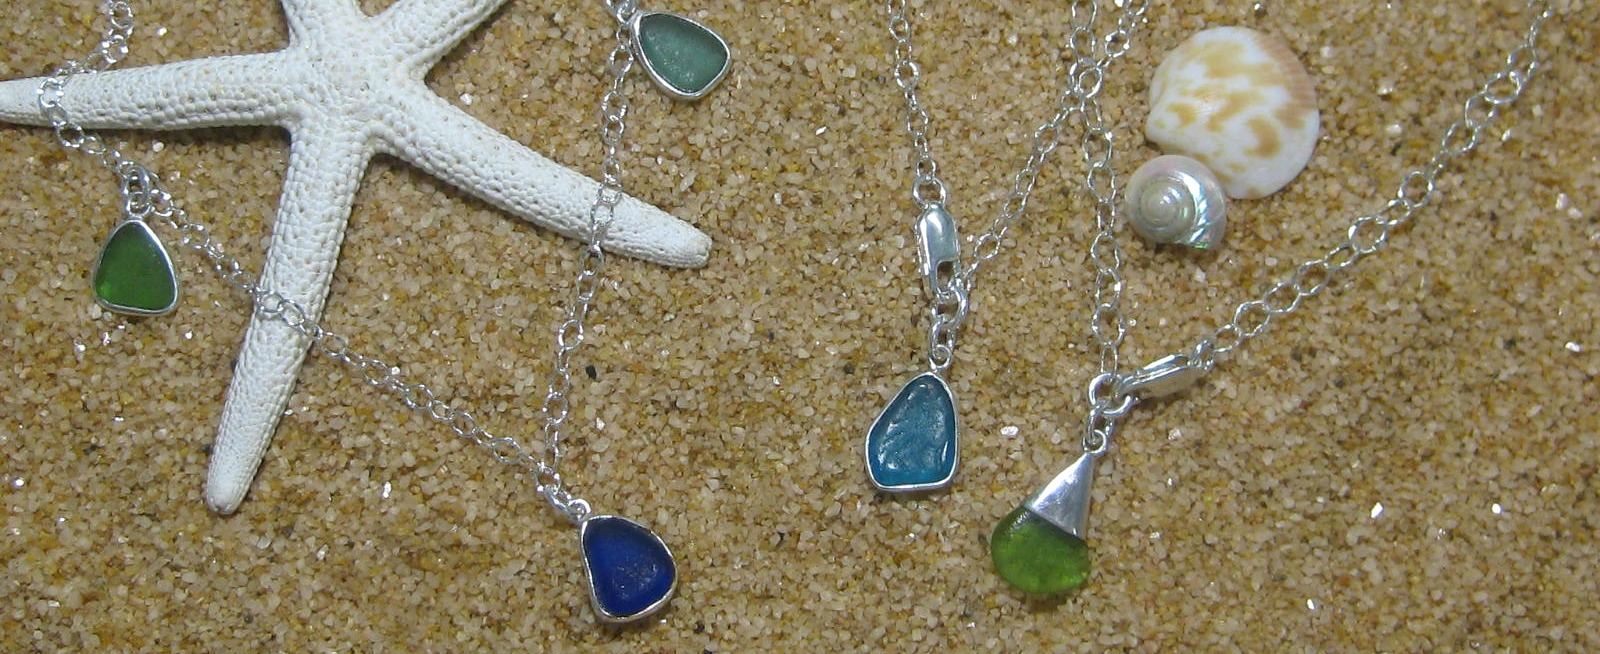 anklets-for-category-page-sea-glass-jewelry.jpg